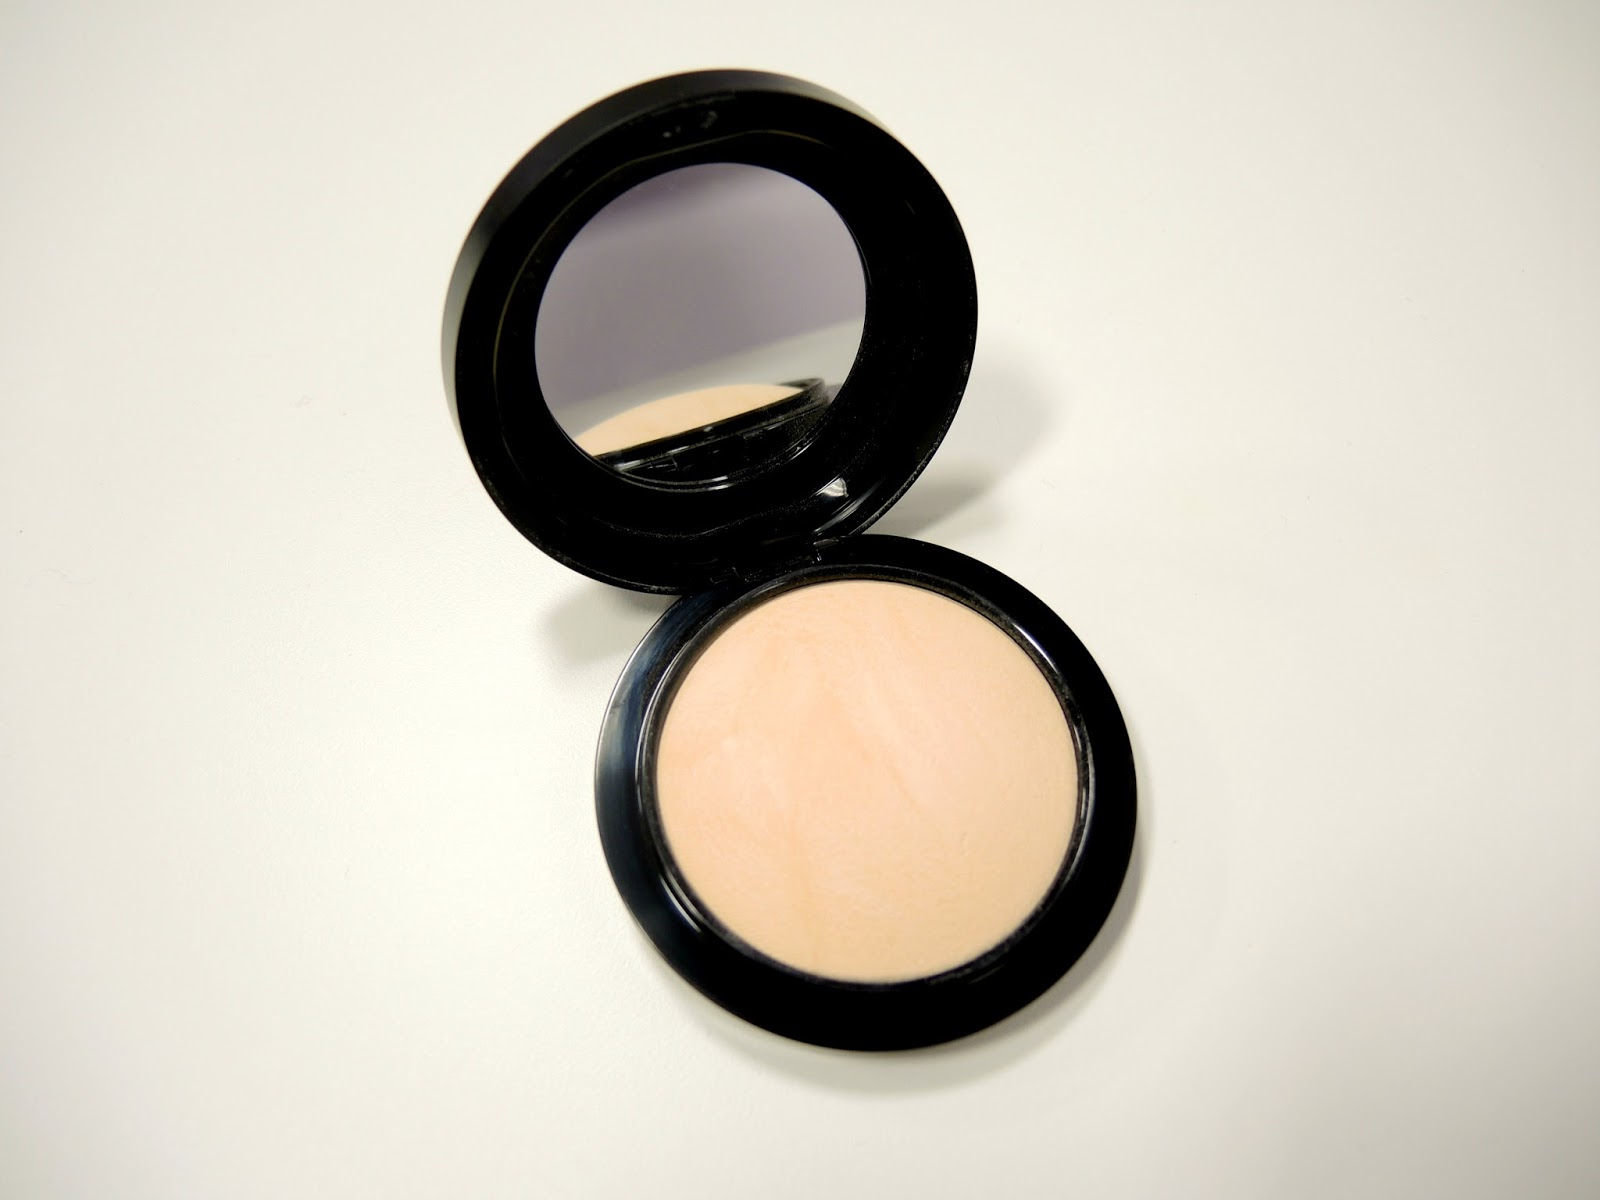 Mac Mineralize Skinfinish Natural Light